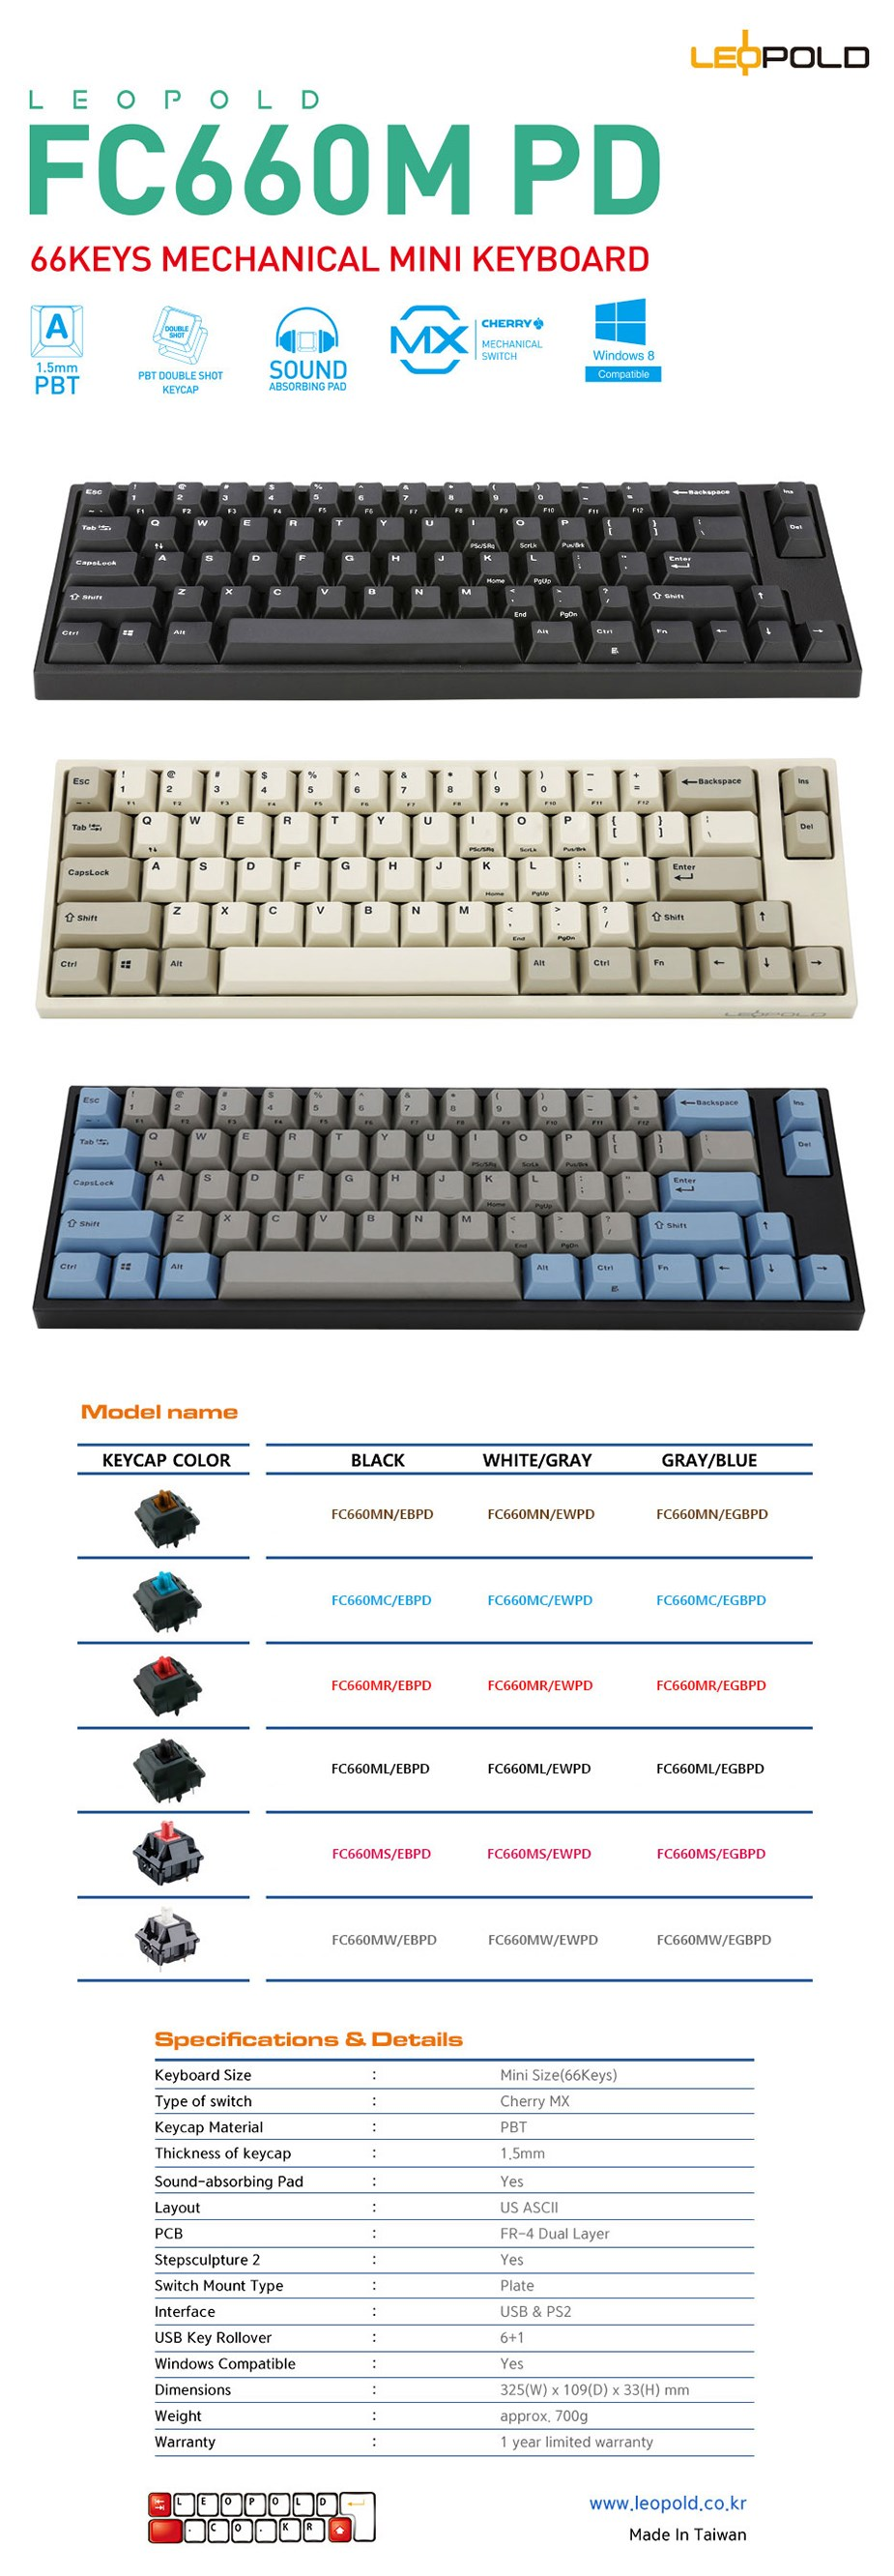 Leopold FC660M White/Gray PD Mini Mechanical Keyboard - Cherry MX Silent Red - Desktop Overview 1